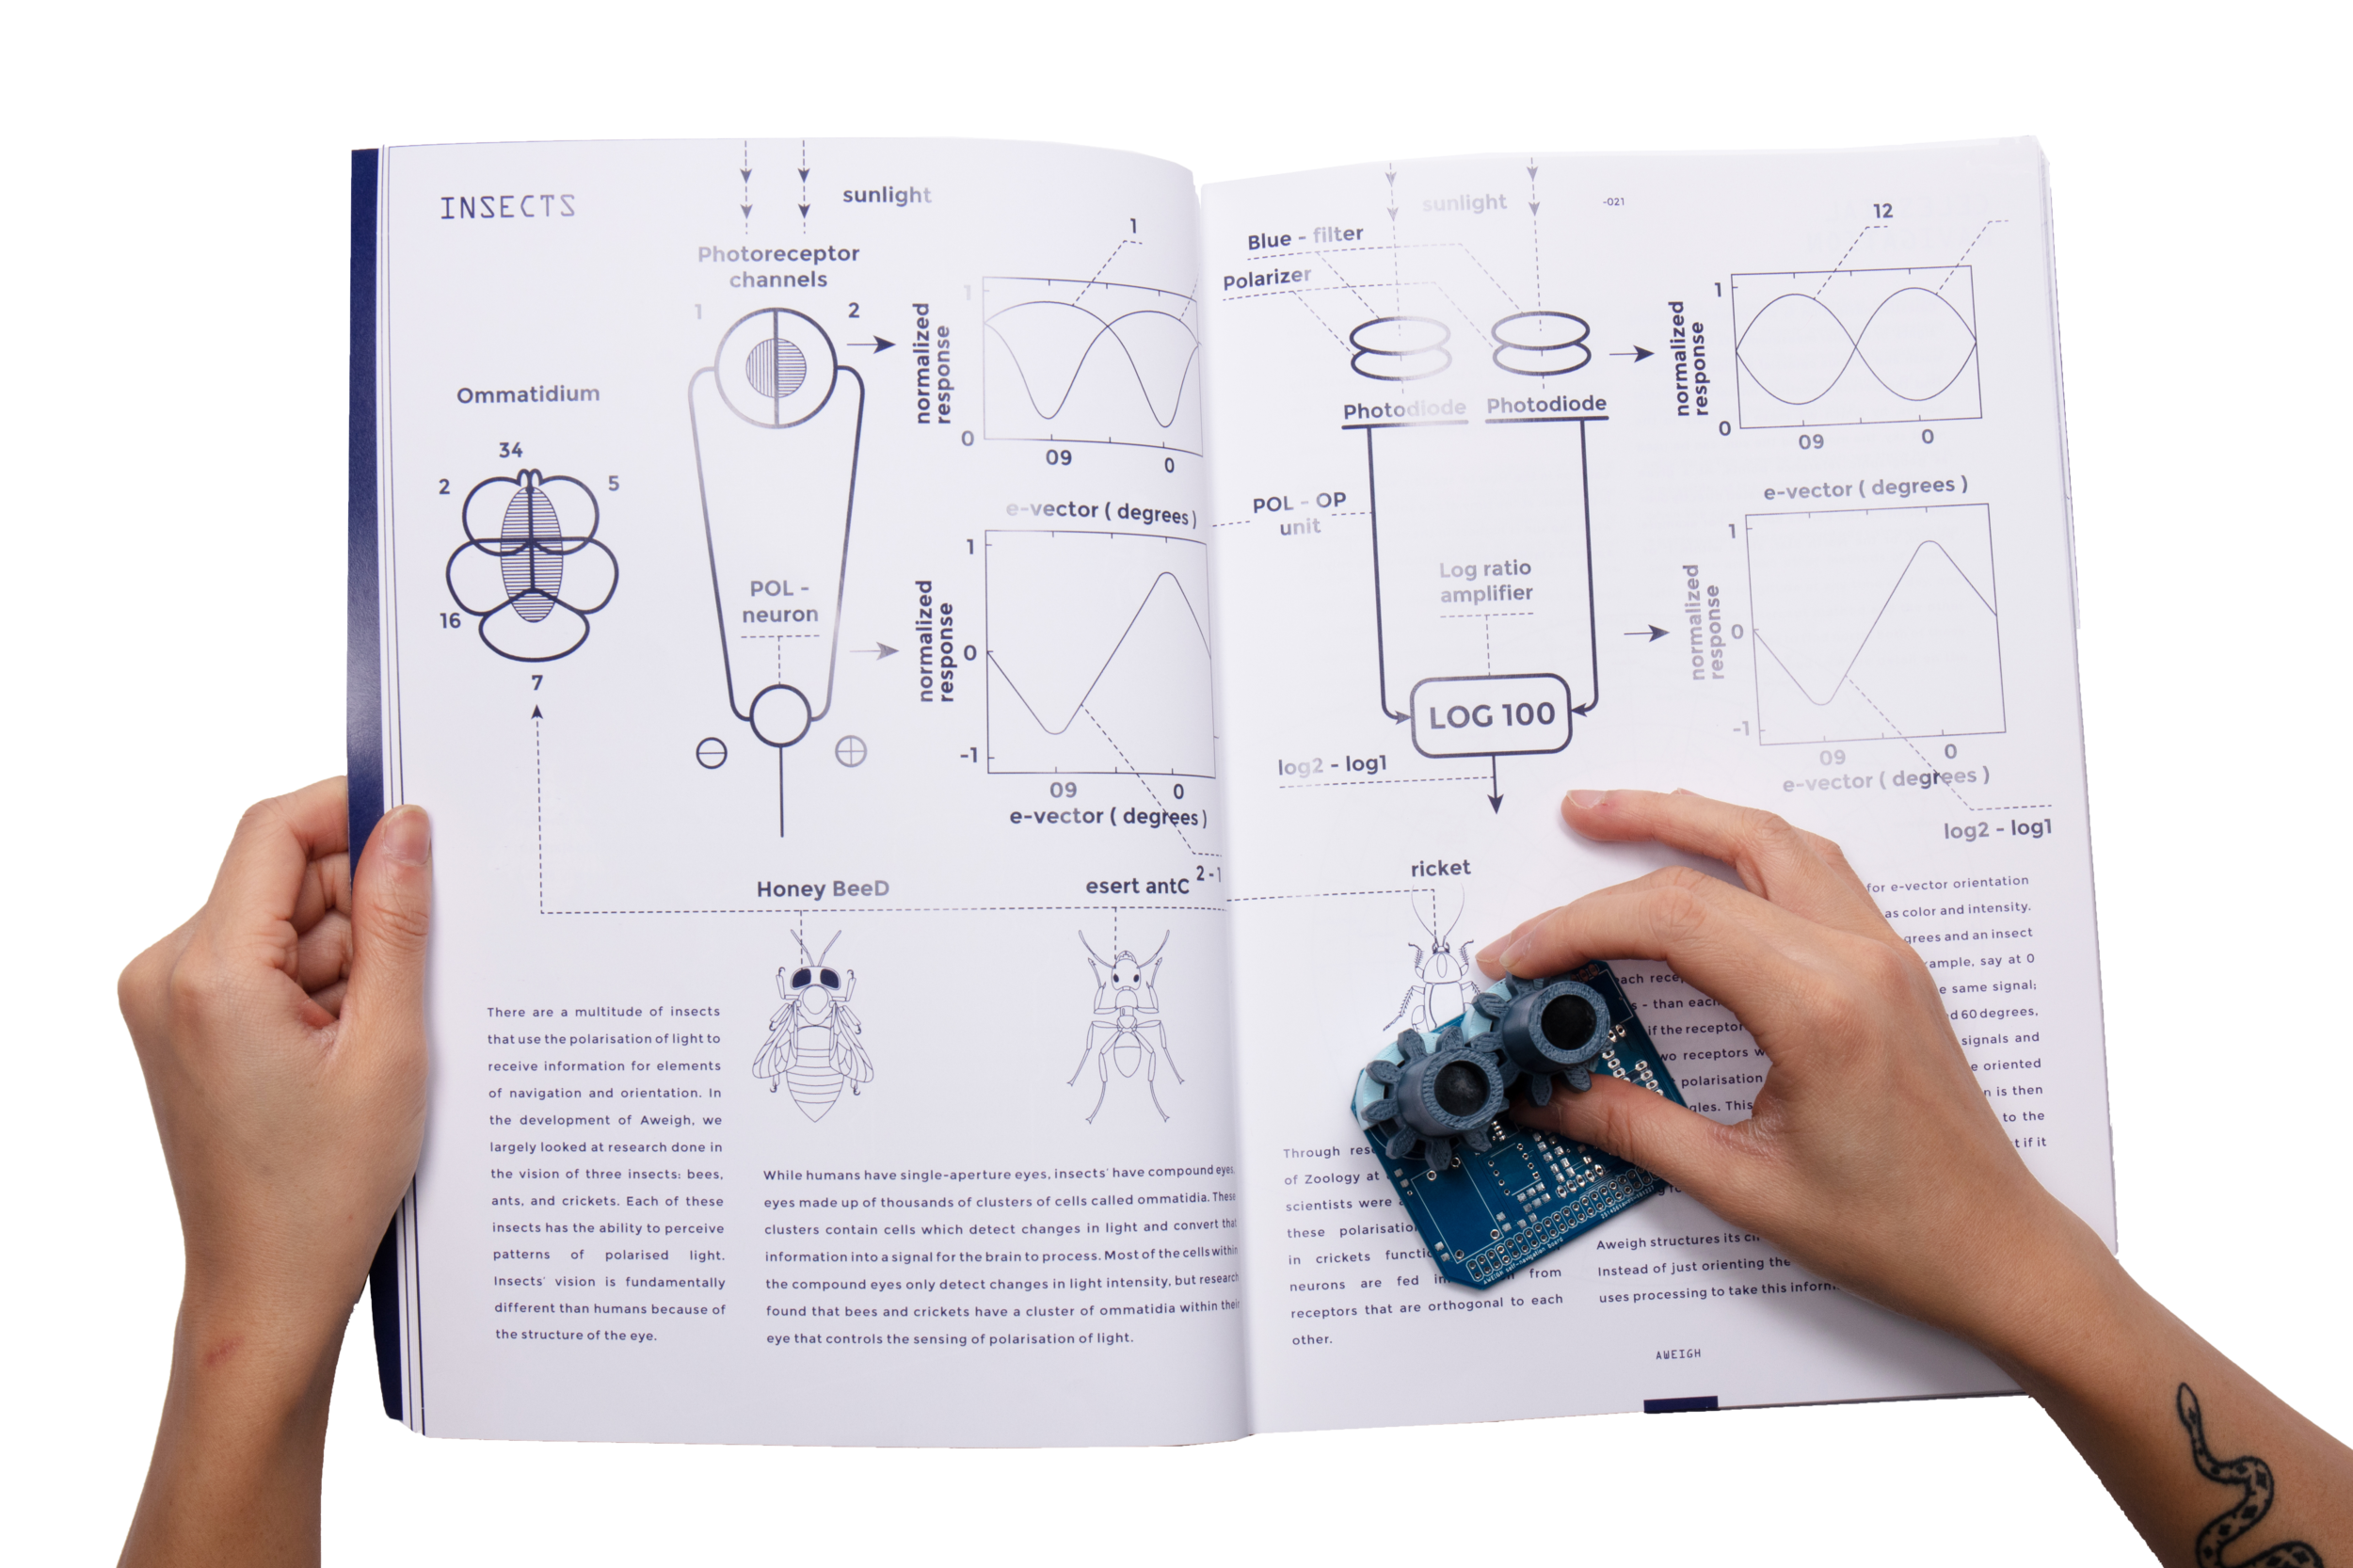 book_pcb_insect_nav_page.png